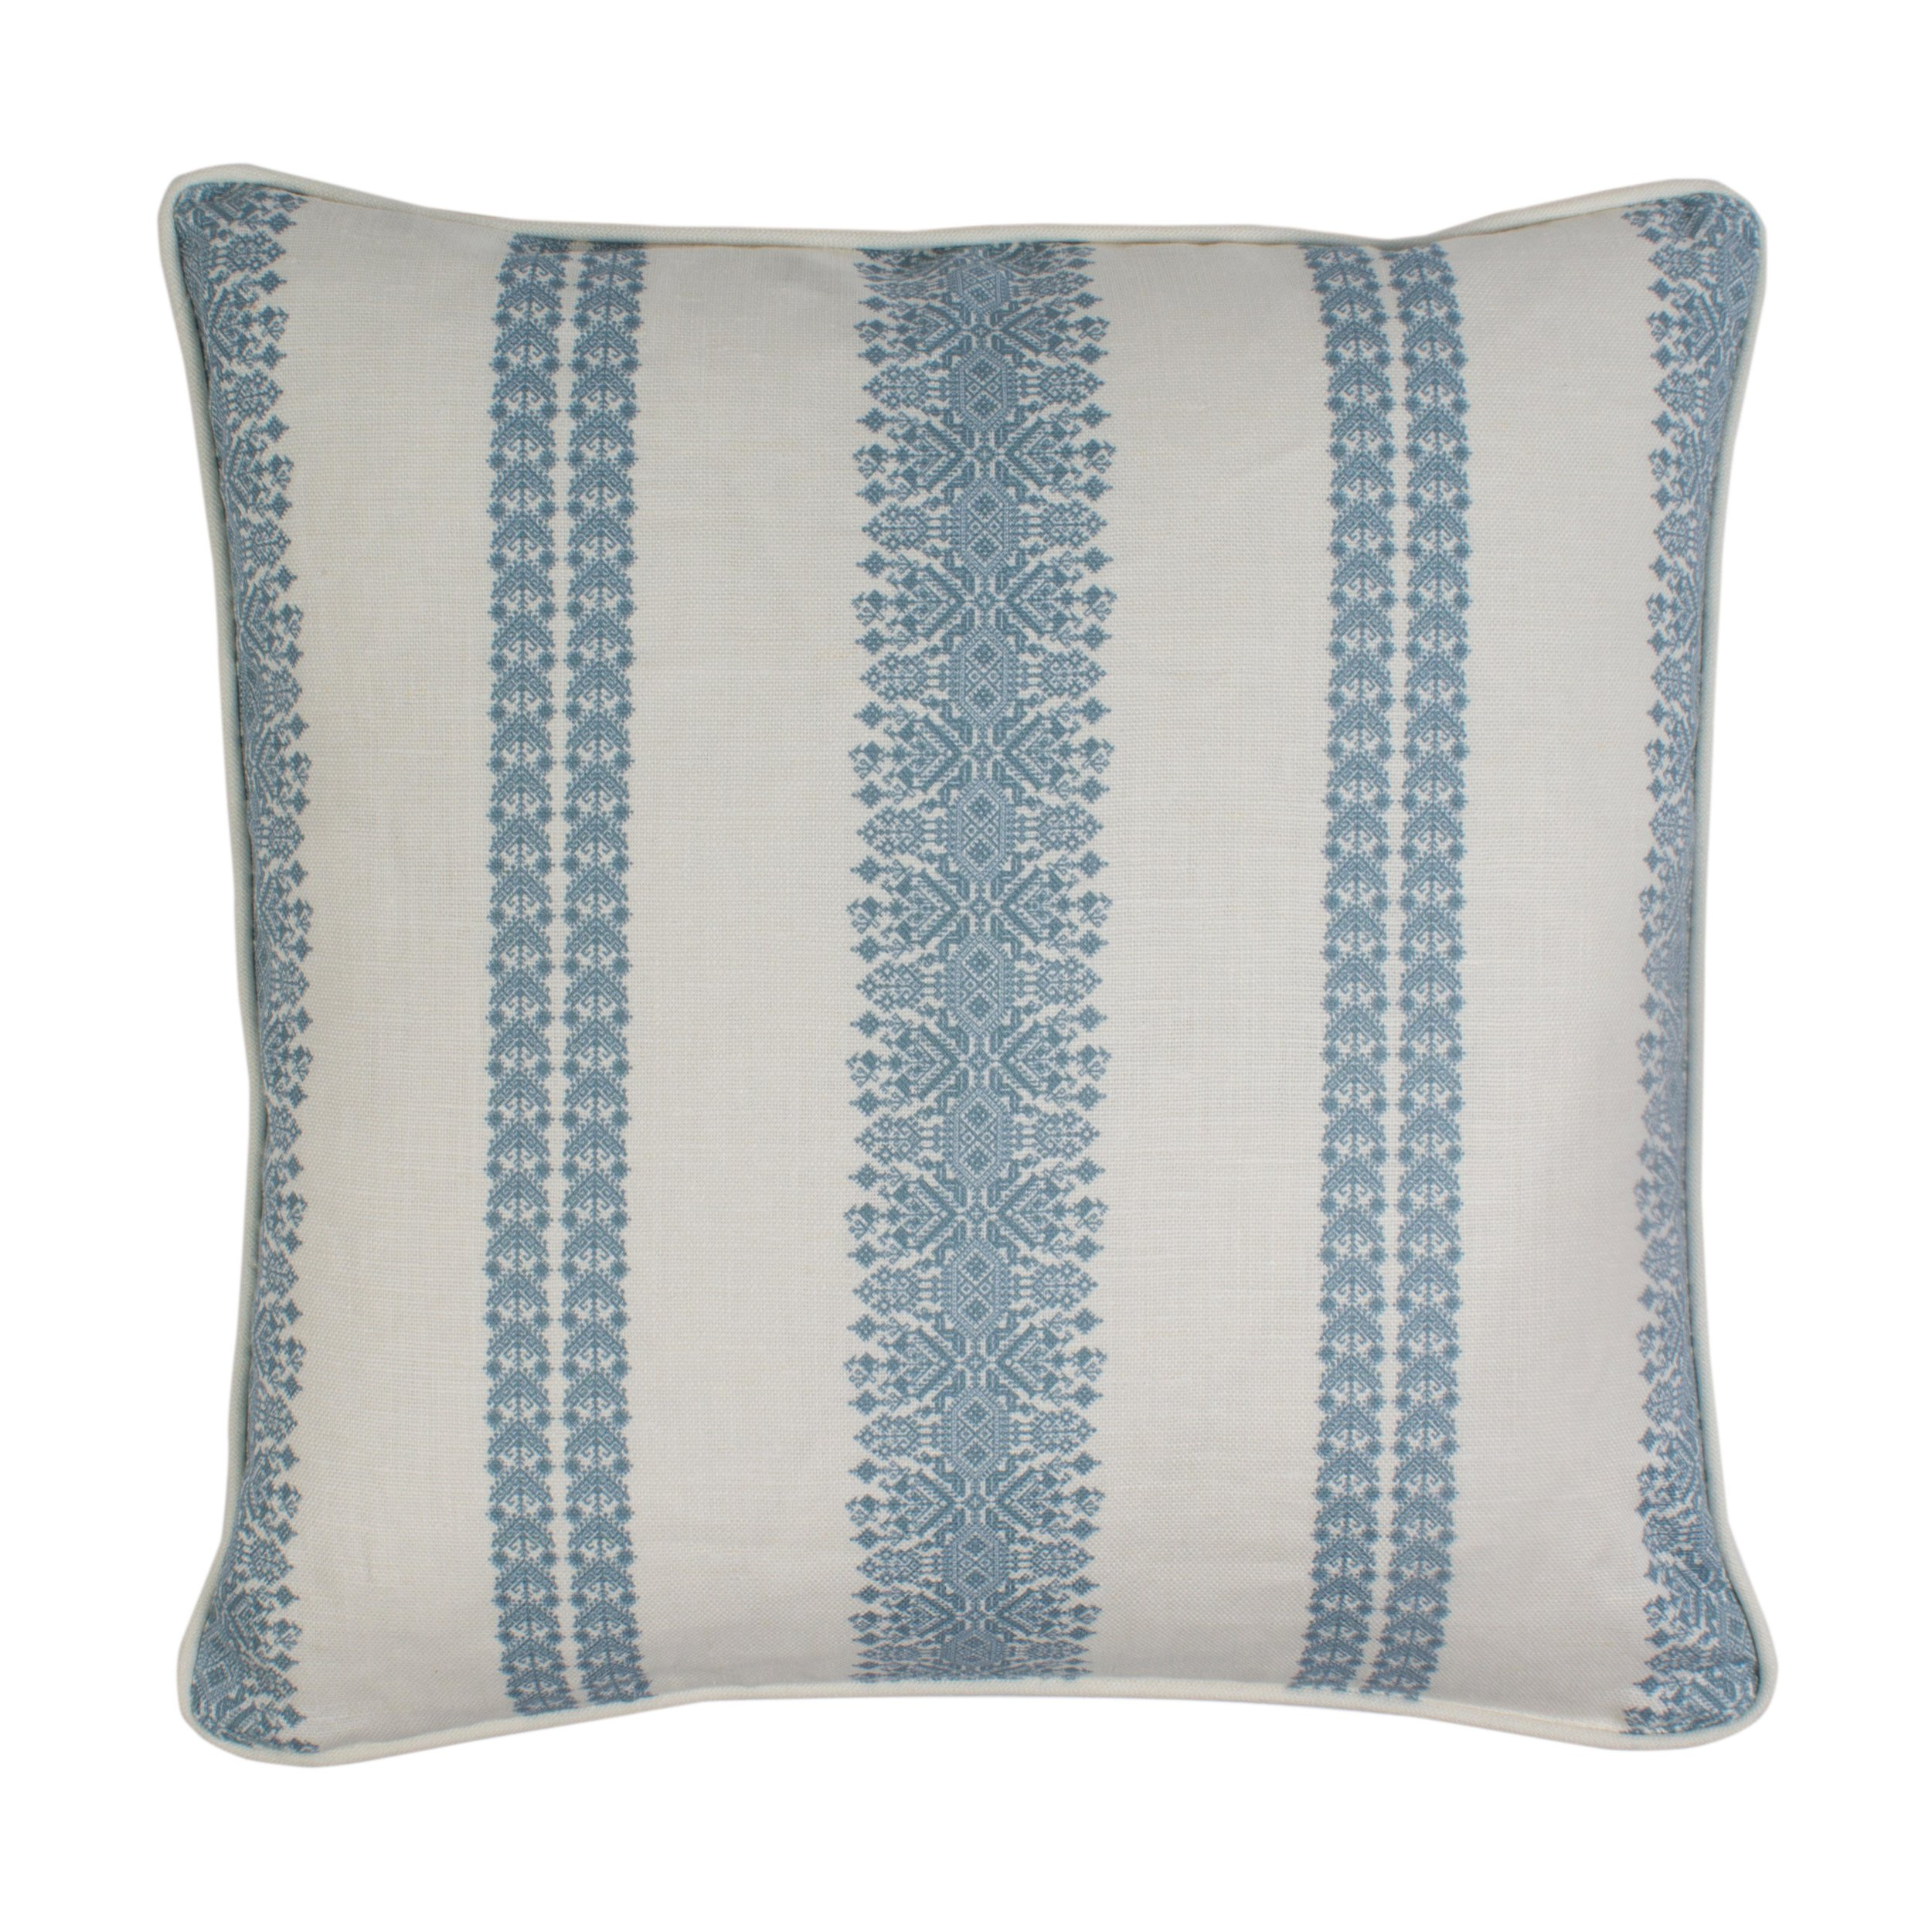 AbbotandAtlas_CycladicStripe_AegeanBlue_Cushion.jpg